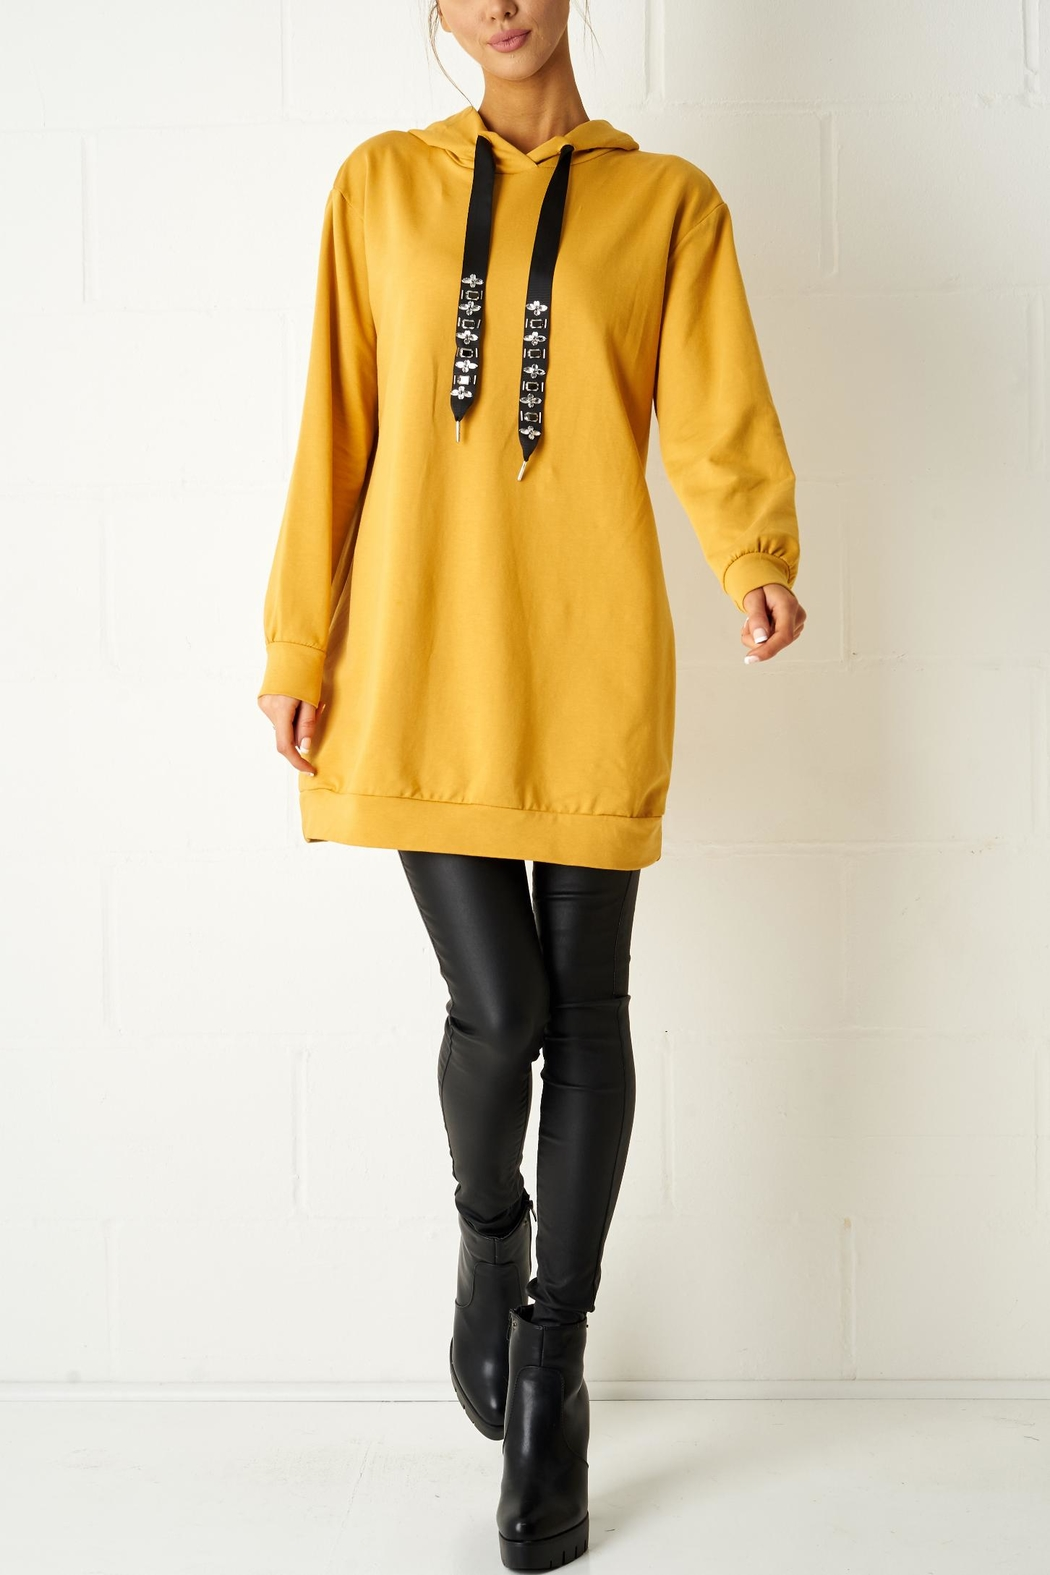 frontrow Mustard Oversized Top - Main Image